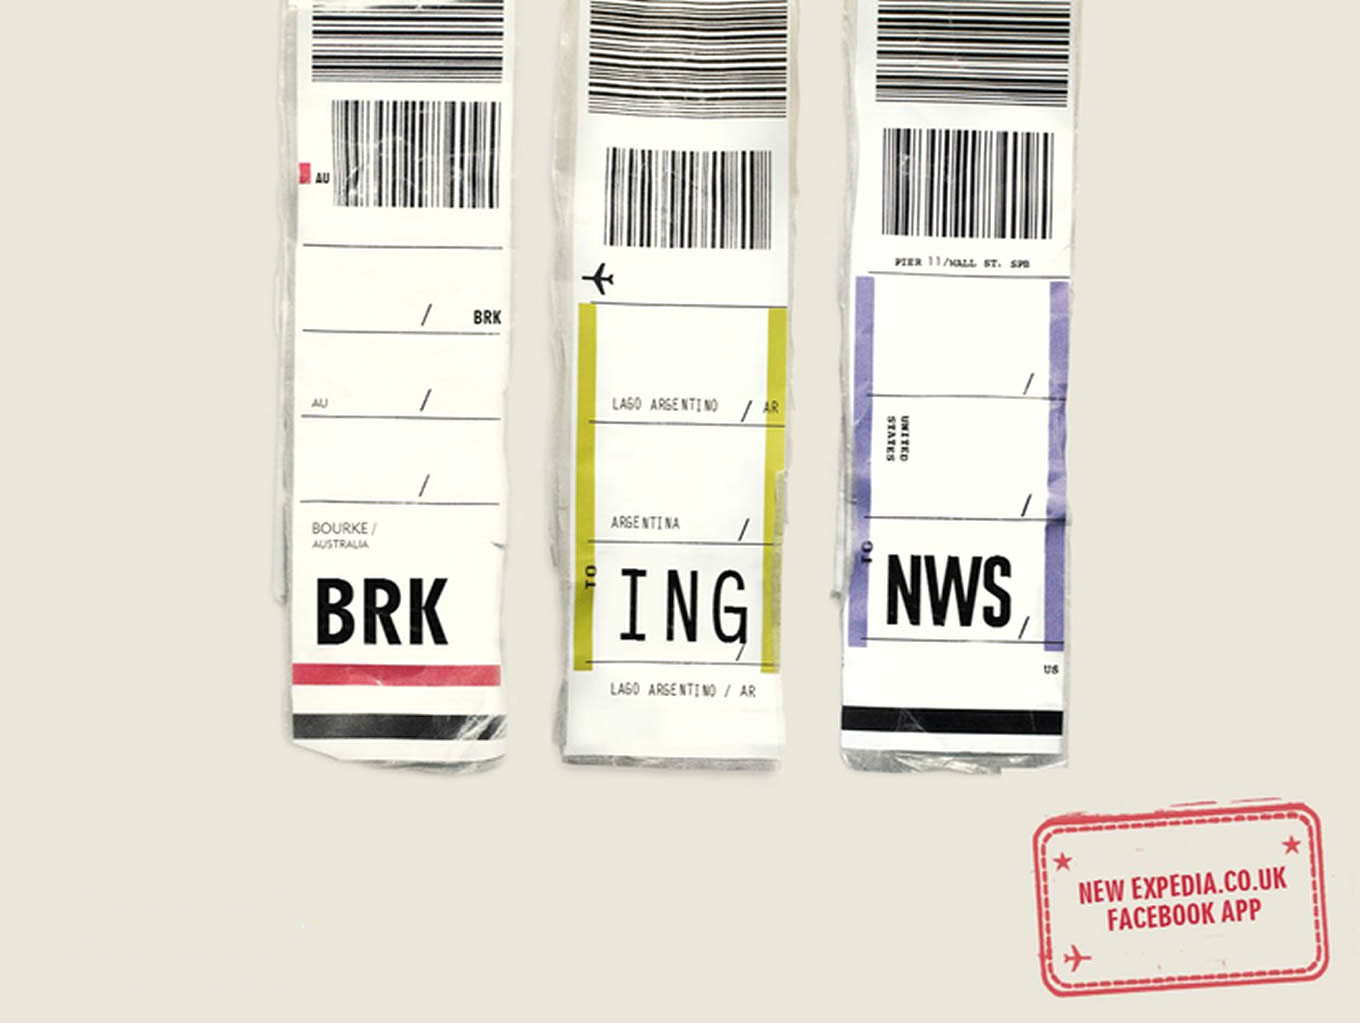 Breaking News Airport Code, Luggage Tags Marketing Campaign by Expedia UK